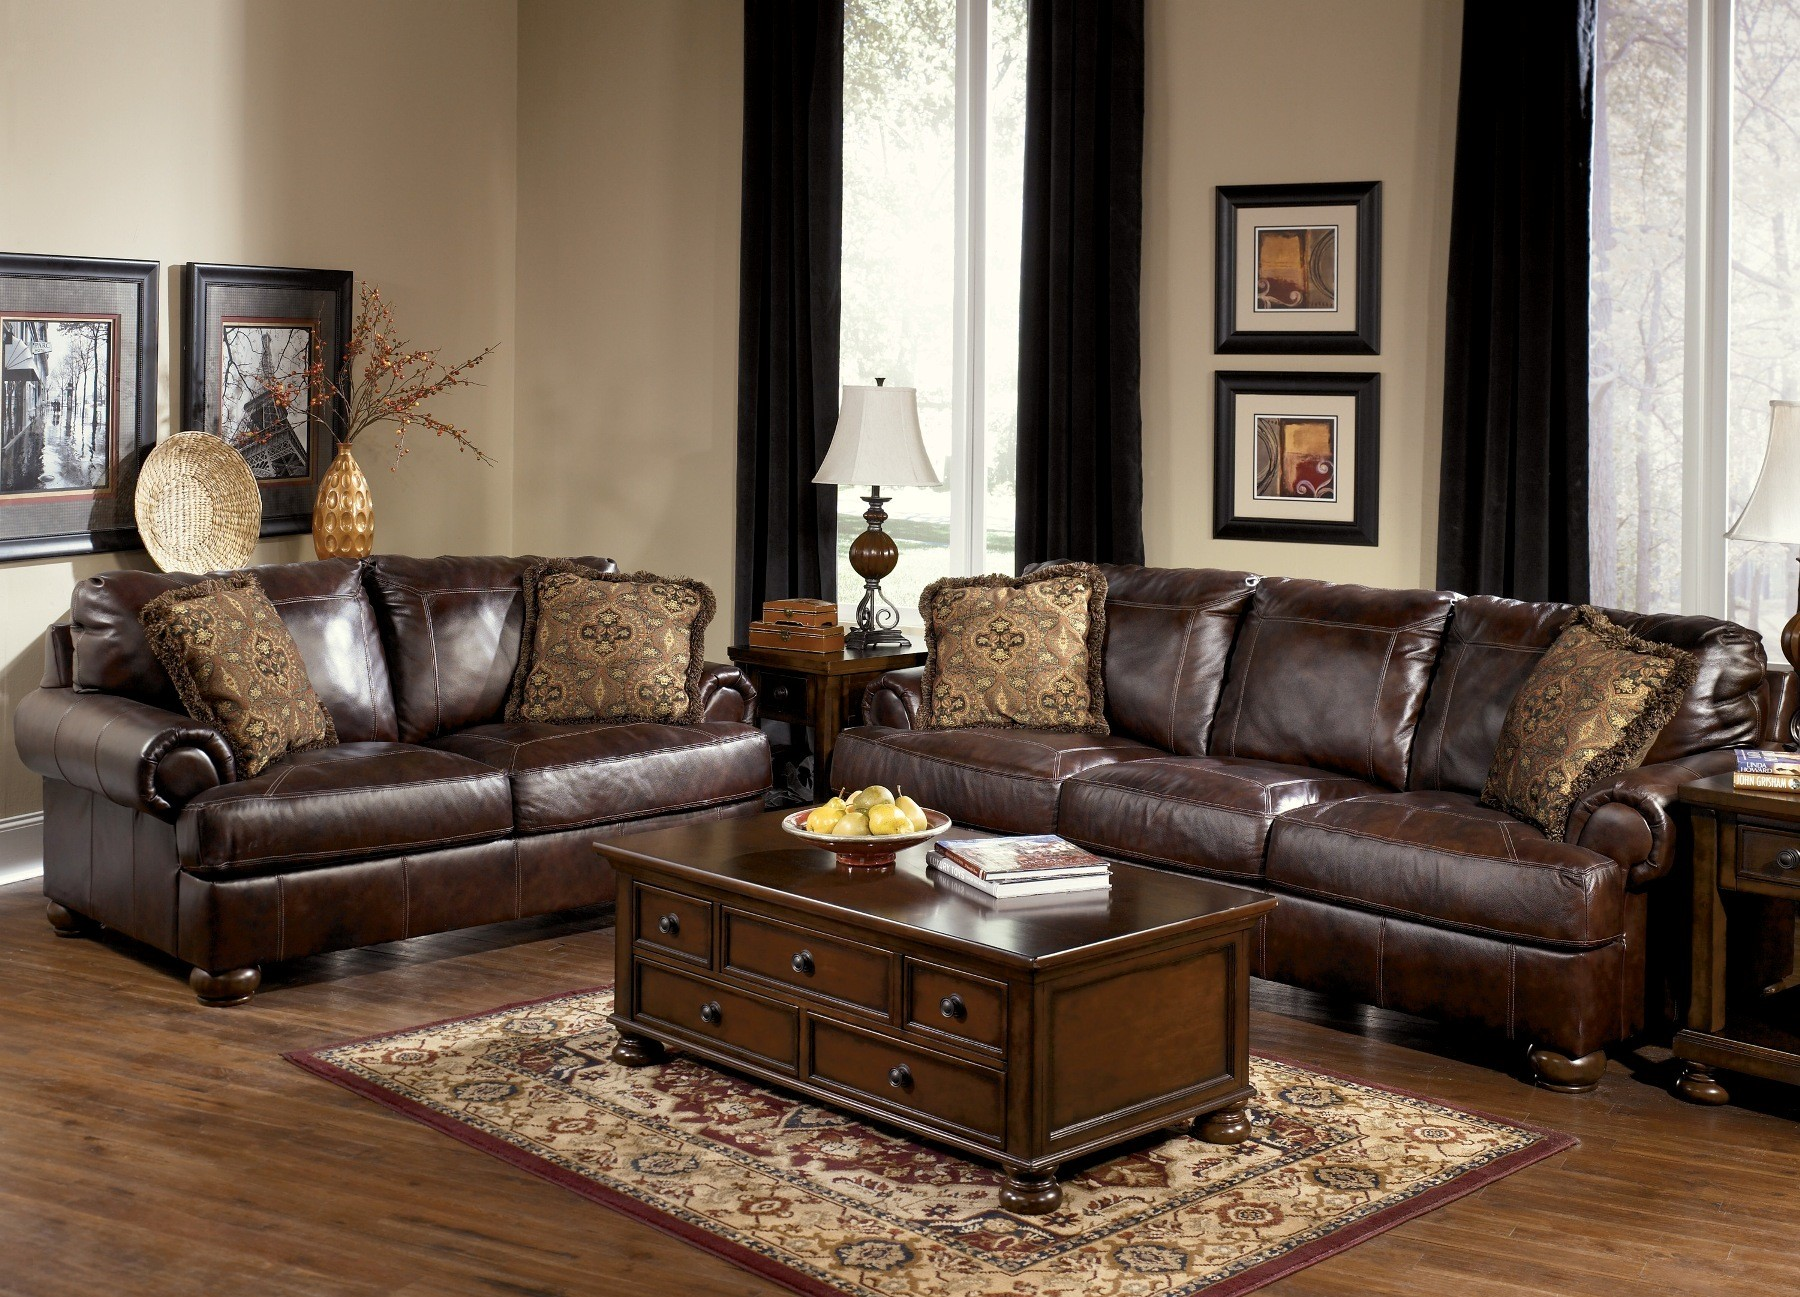 Furnitureetc Furniture More Axiom Walnut Living Room Set From Ashley Furniture Furniture